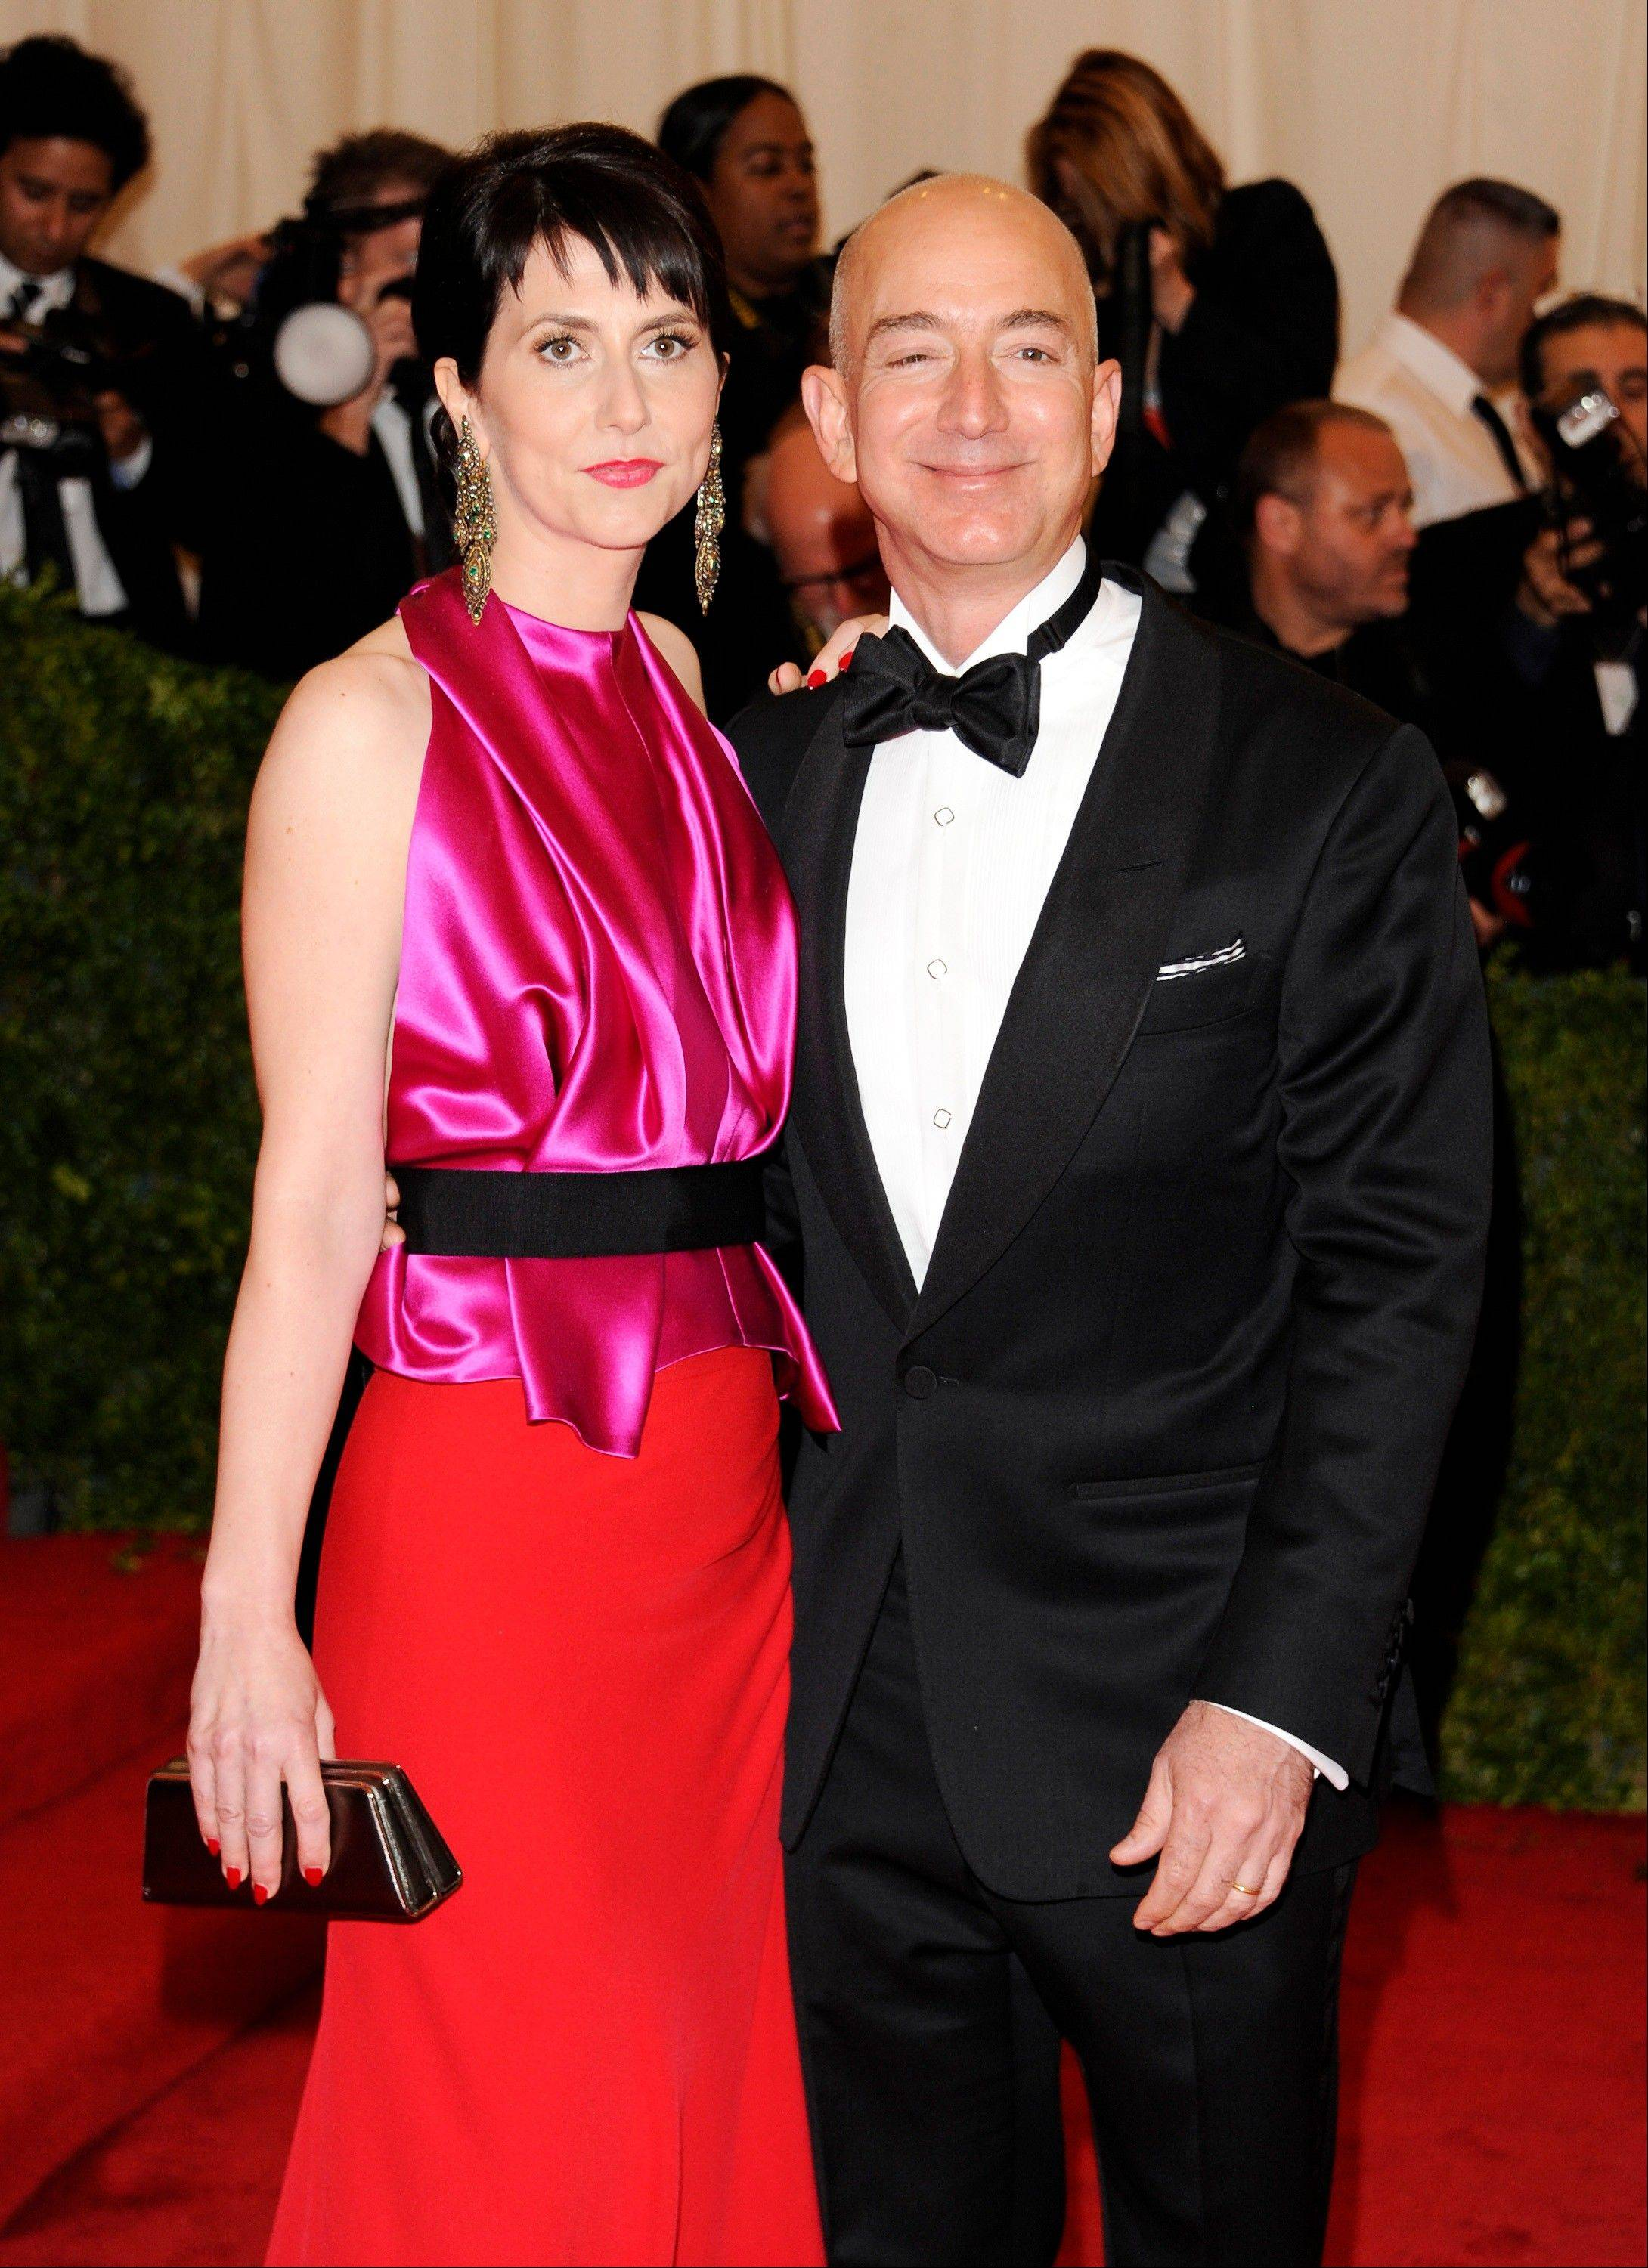 Associated Press/May 7, 2012Amazon founder, president and CEO Jeff Bezos and wife Mackenzie Bezos arrive at the Metropolitan Museum of Art Costume Institute gala benefit.